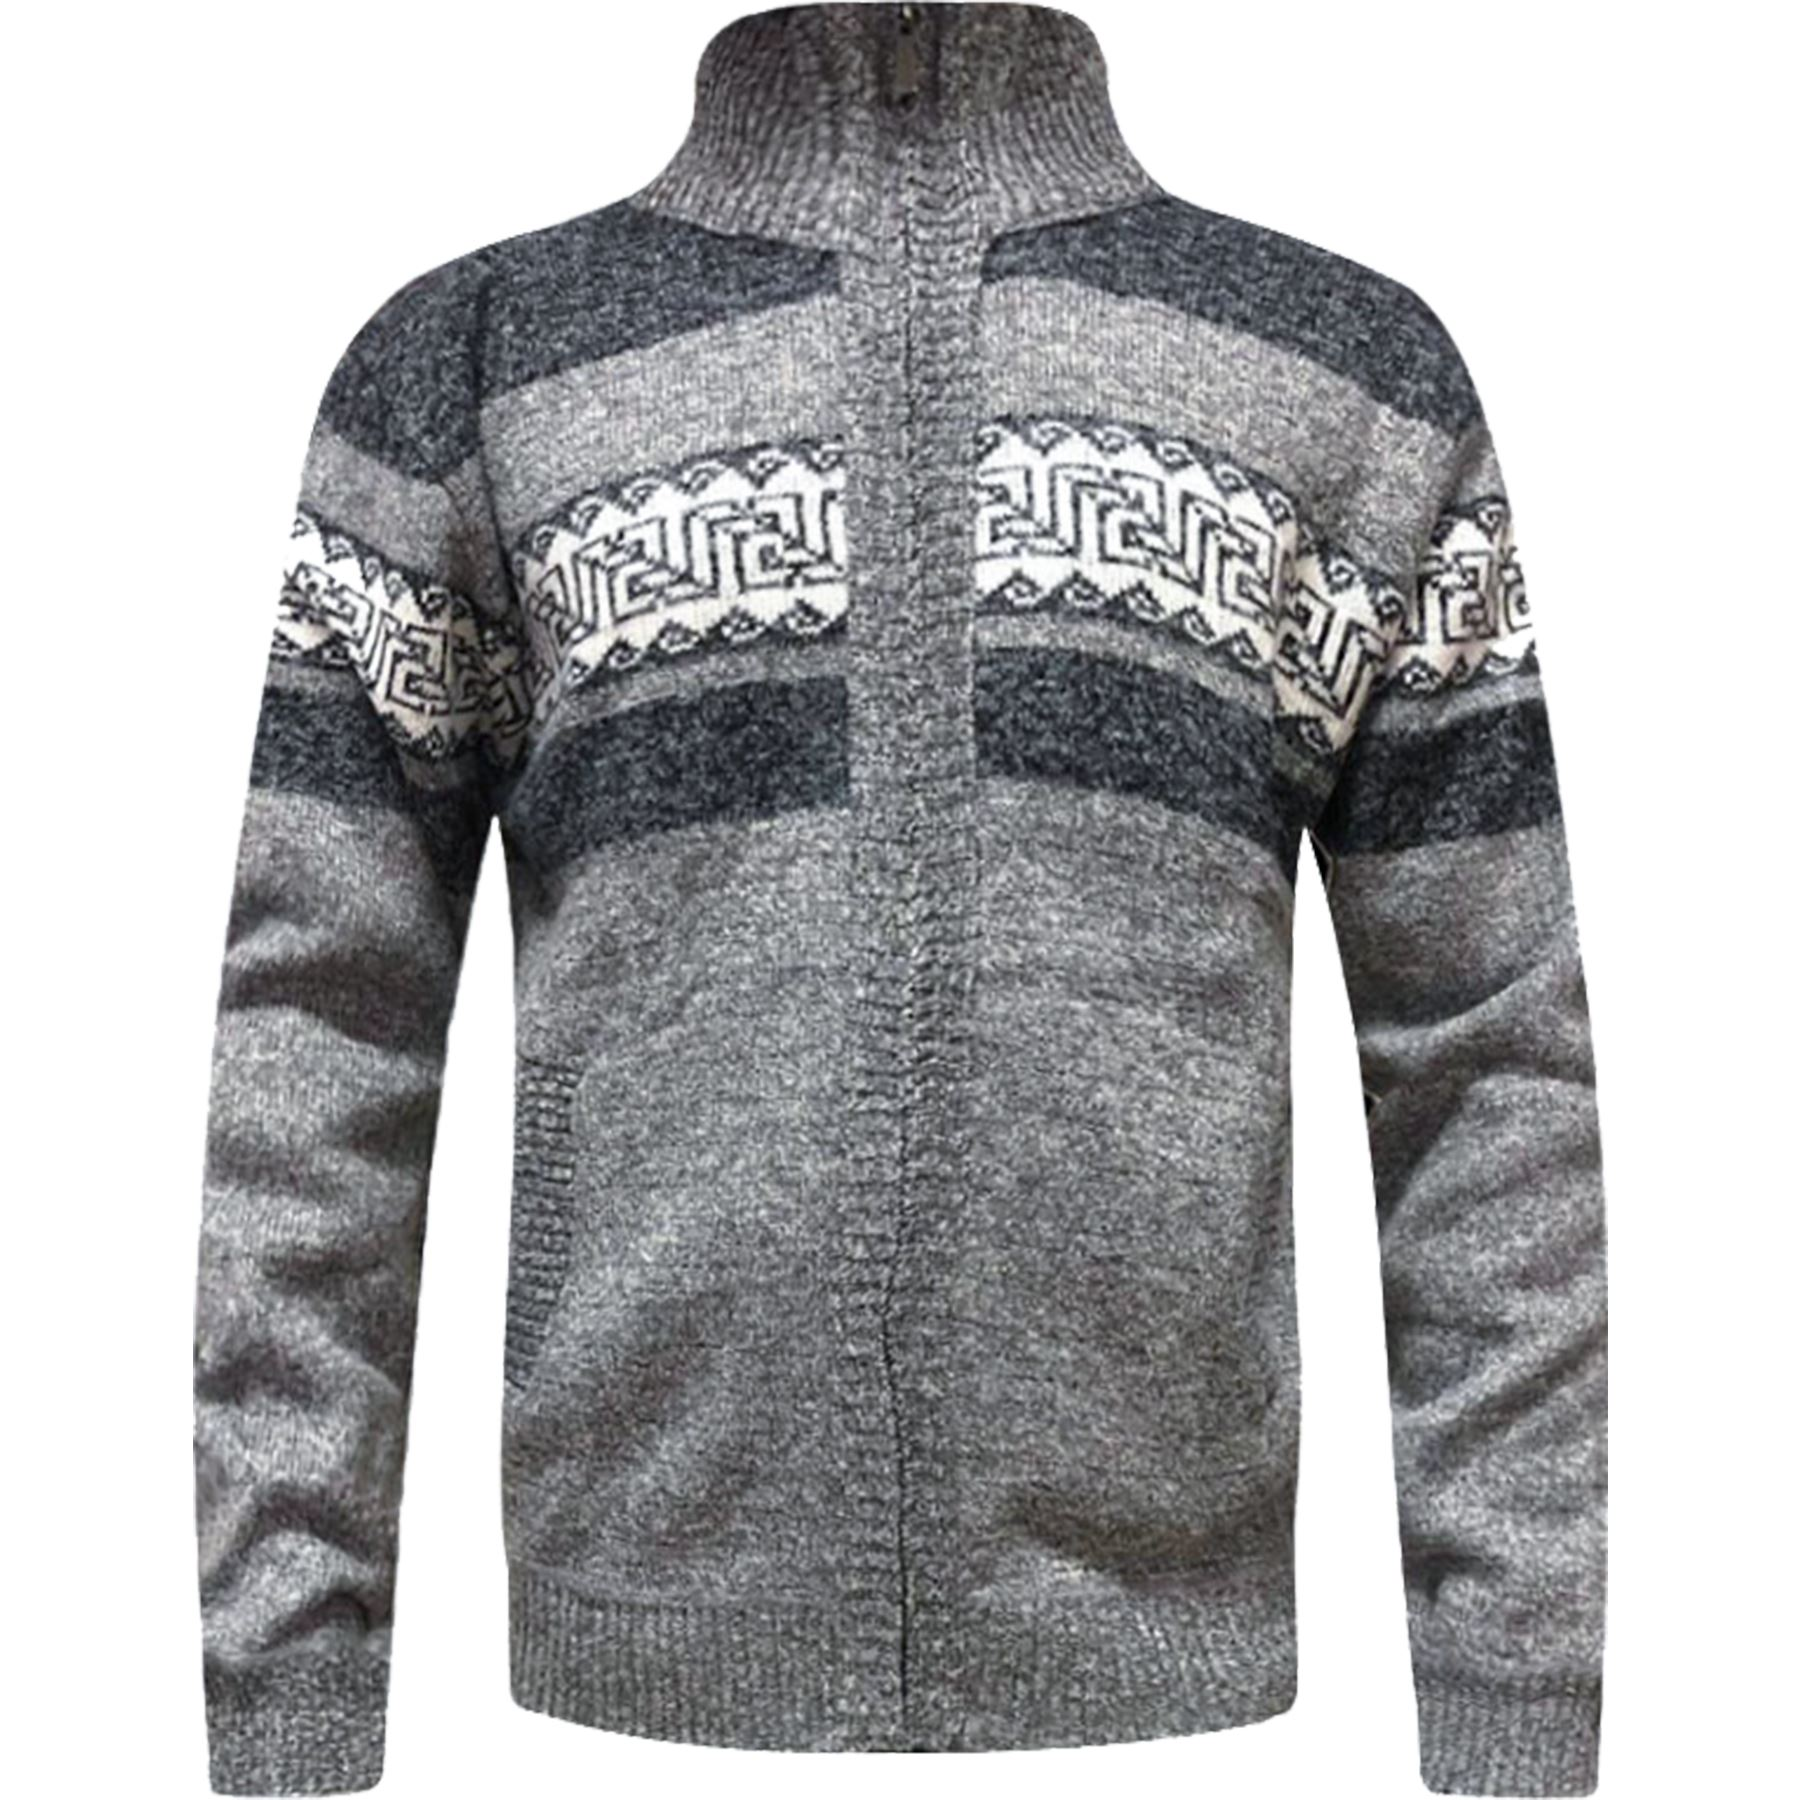 Mens-Zip-Up-Aztec-Fleece-Lined-Knitted-Cardigan-Xmas-Argyle-Wool-Blend-Jumper thumbnail 9